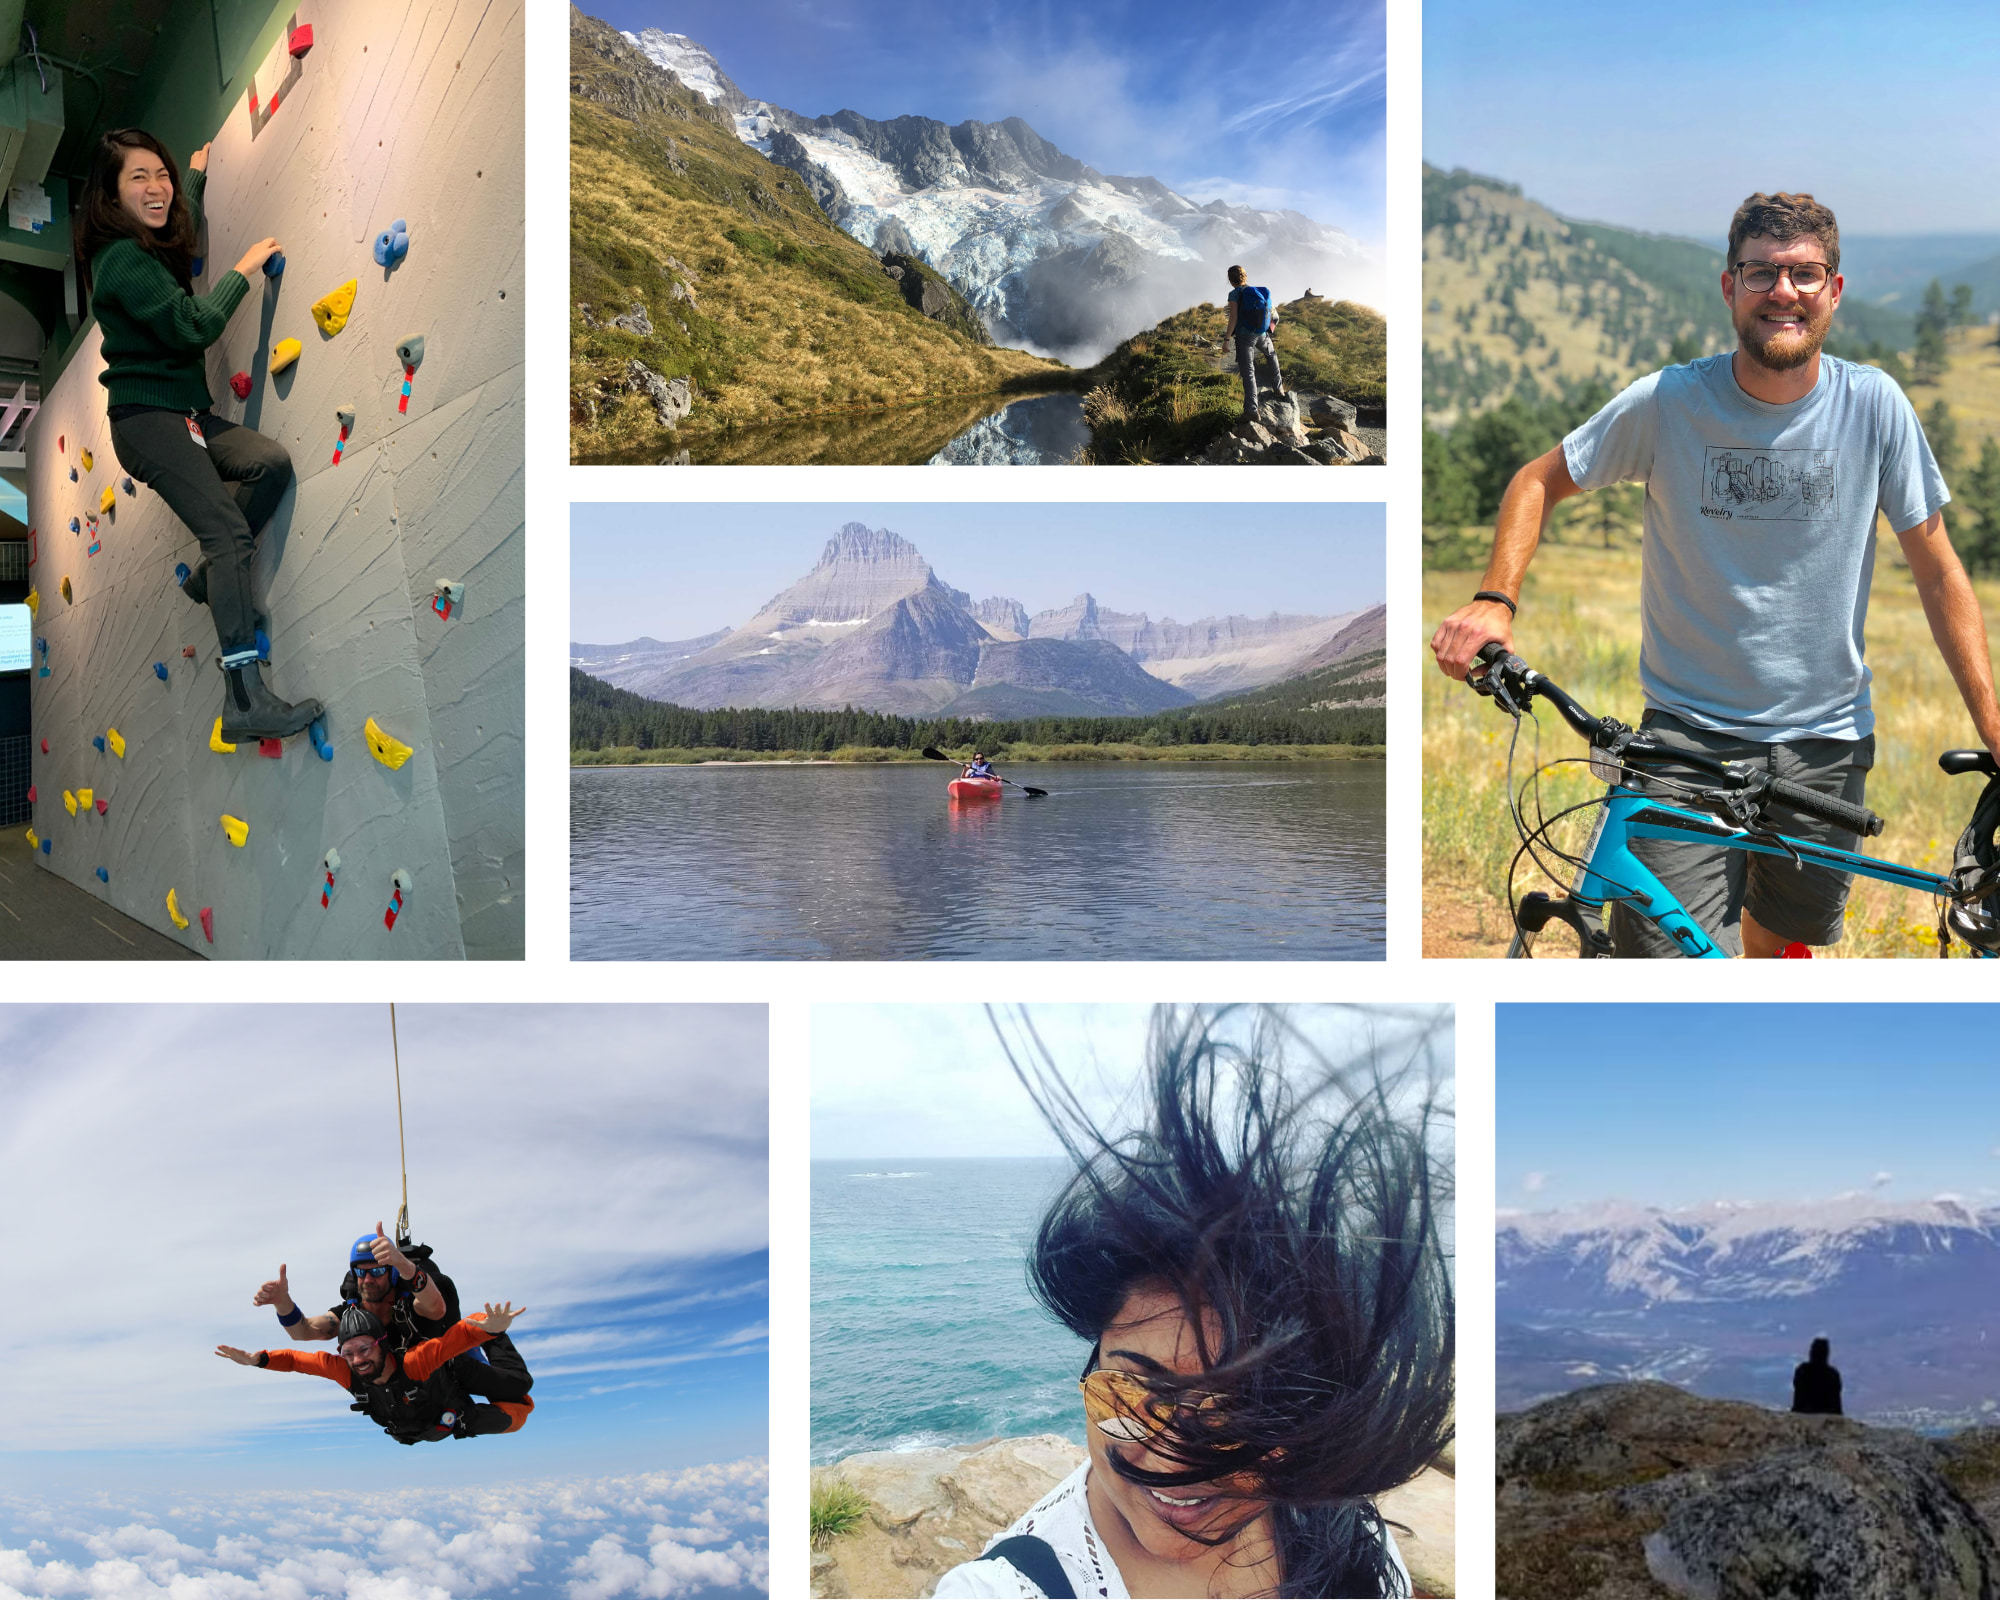 A photo collage that shows off Krit Team members going on adventures.